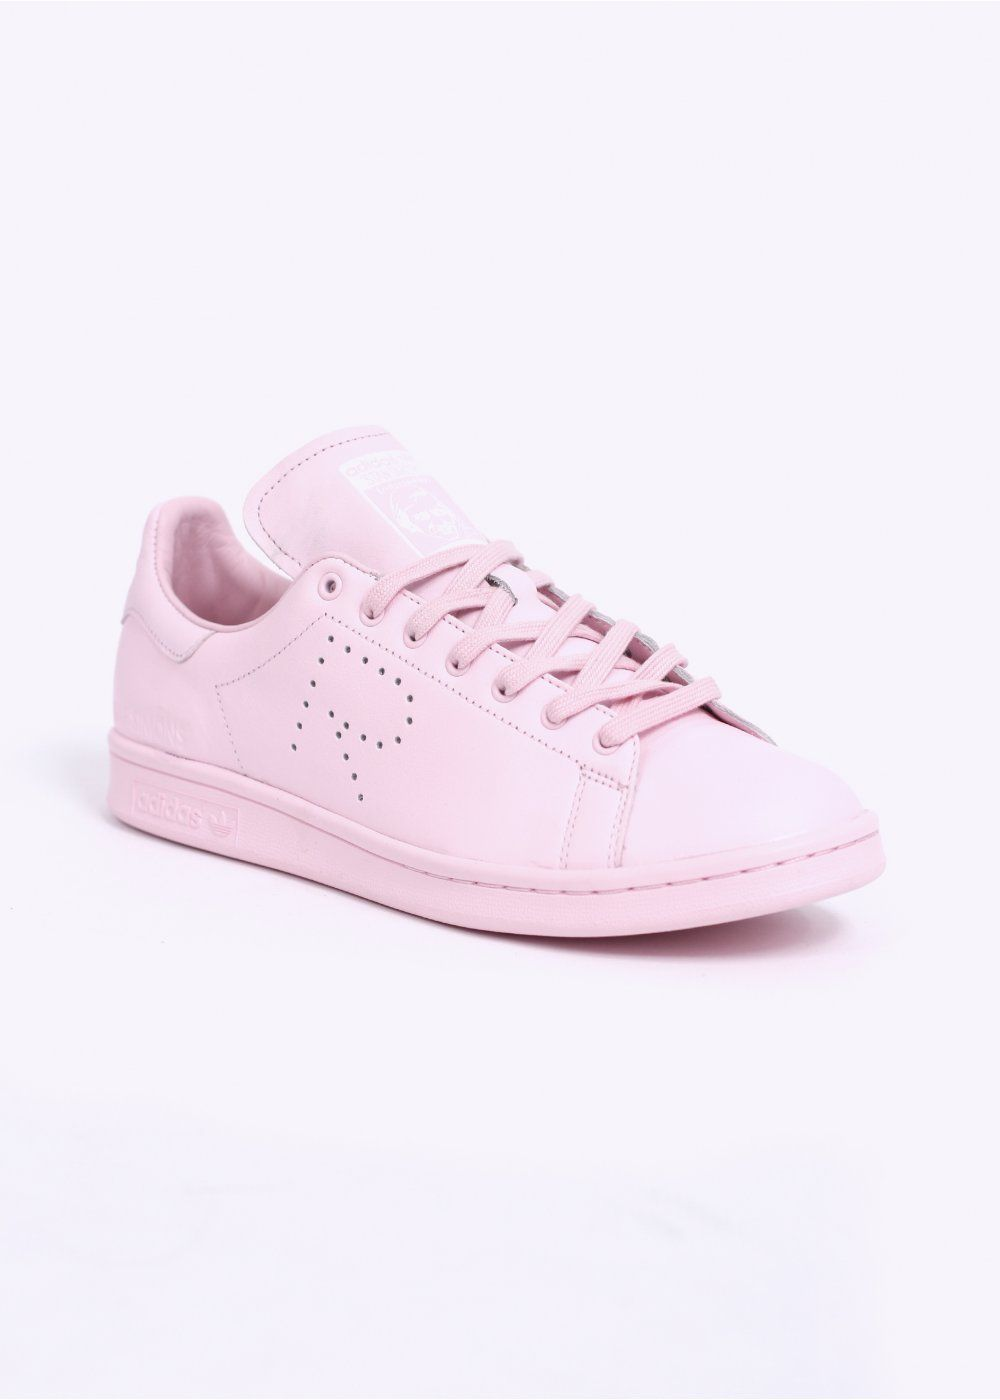 Adidas Originals X Raf Simons STAN SMITH TRAINERS - PINK / WHITE